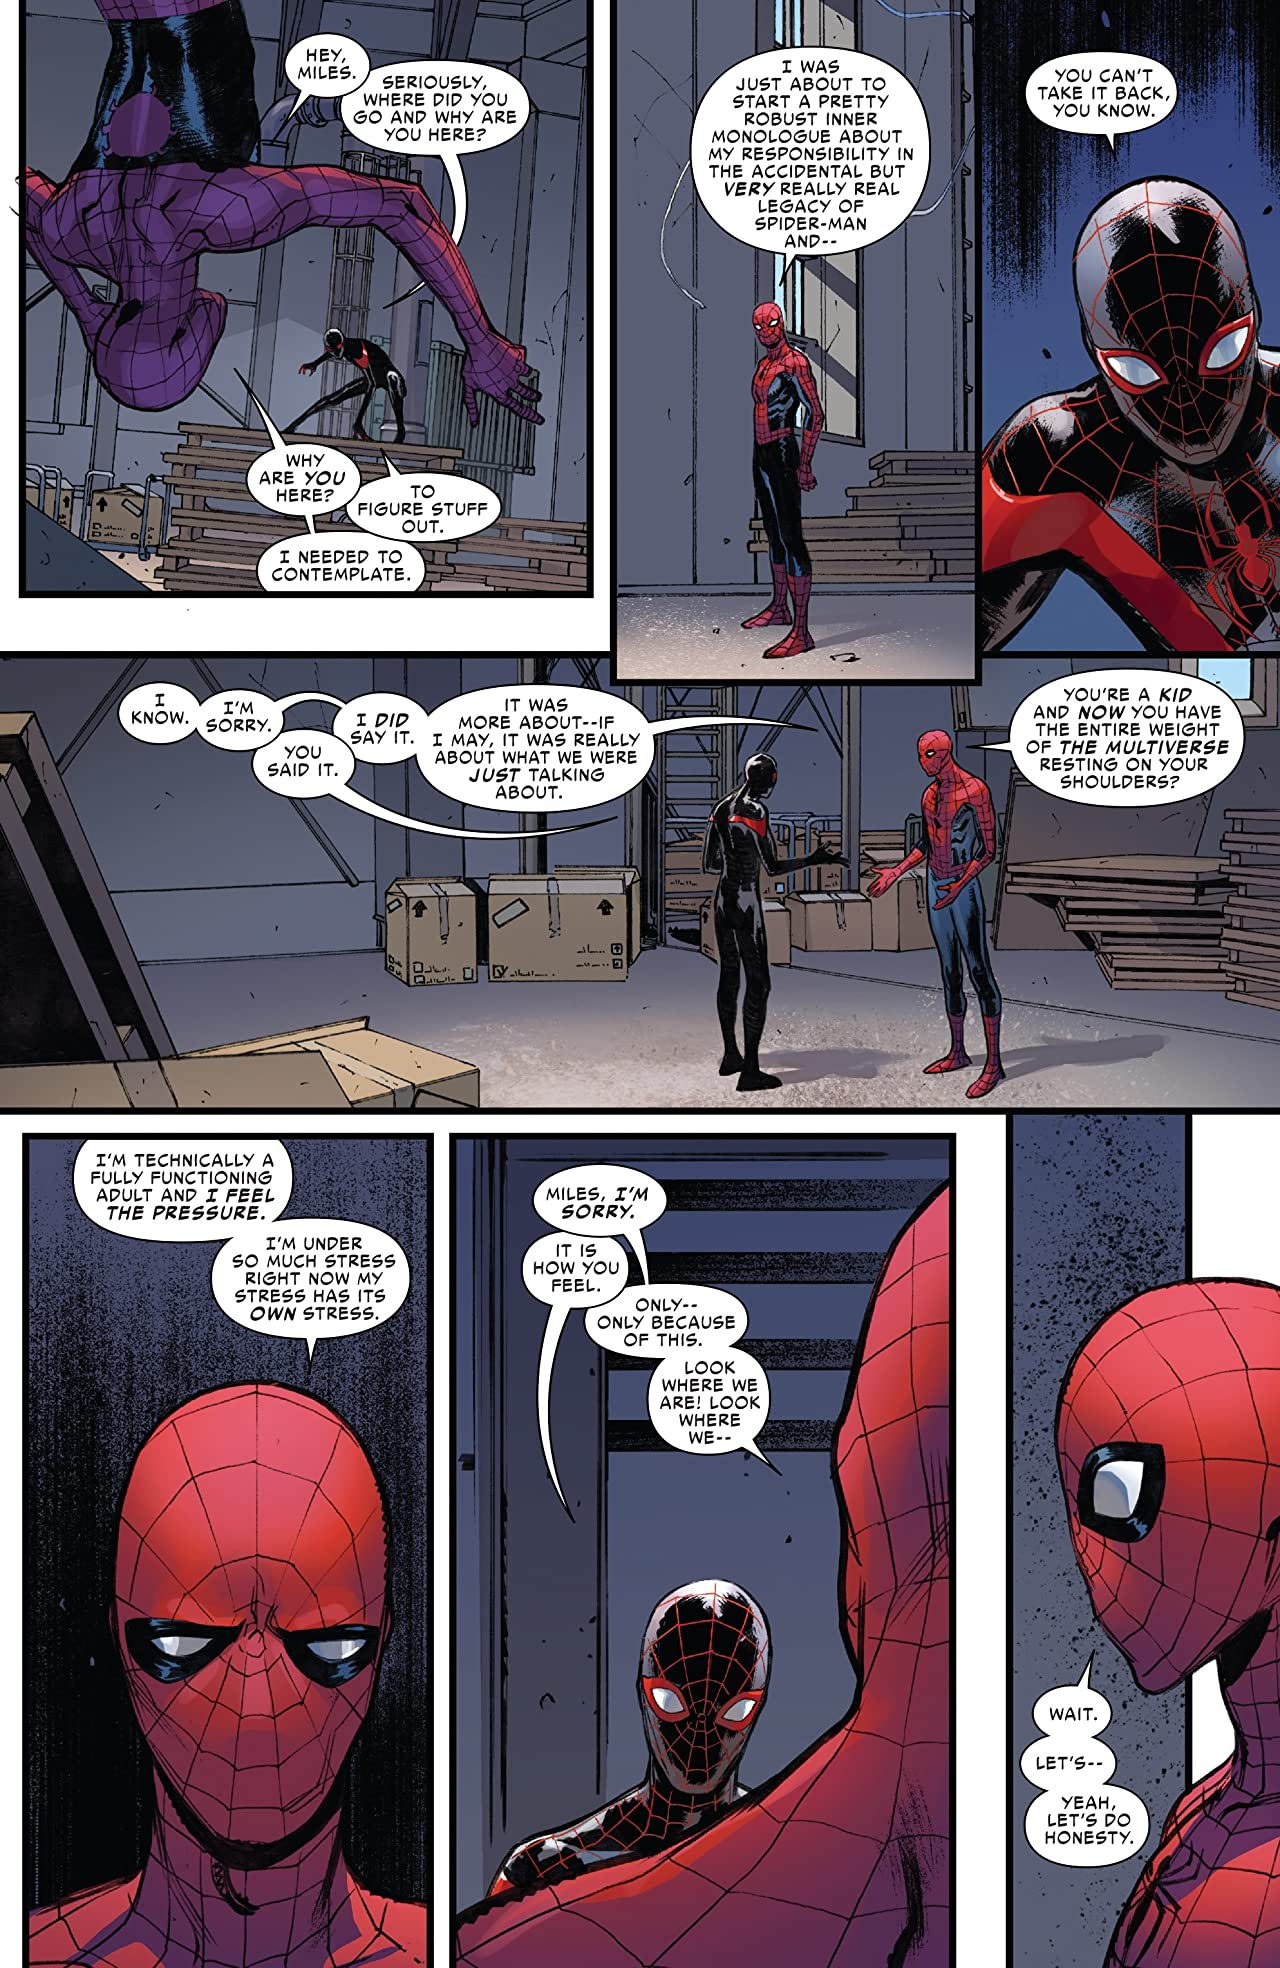 Spider-Men II (2017) #5 (of 5)